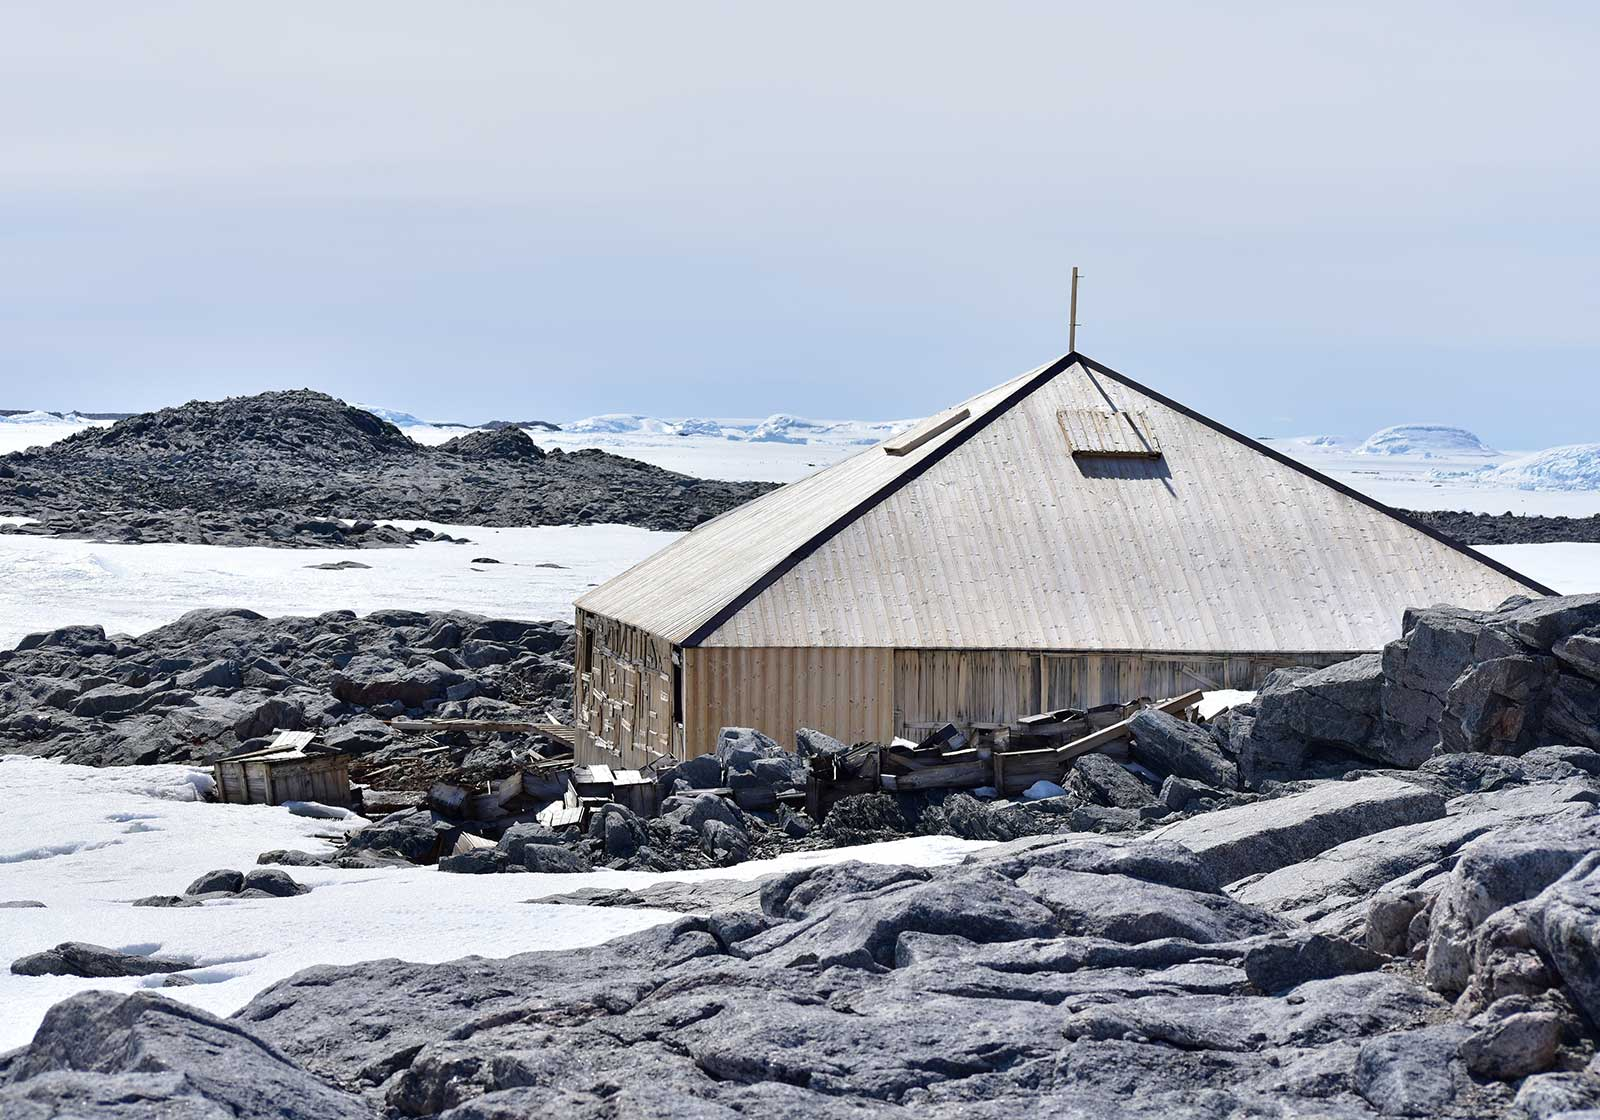 Mawson, Mawson's Huts, Mawson's Huts Foundation, Cape Denison, East Antarctica, Antarctica, Australasian Antarctic Expedition, AAE, Australia's Antarctic Heritage, Antarctic History, Heroic Era of Antarctica, Conservation and Restoration